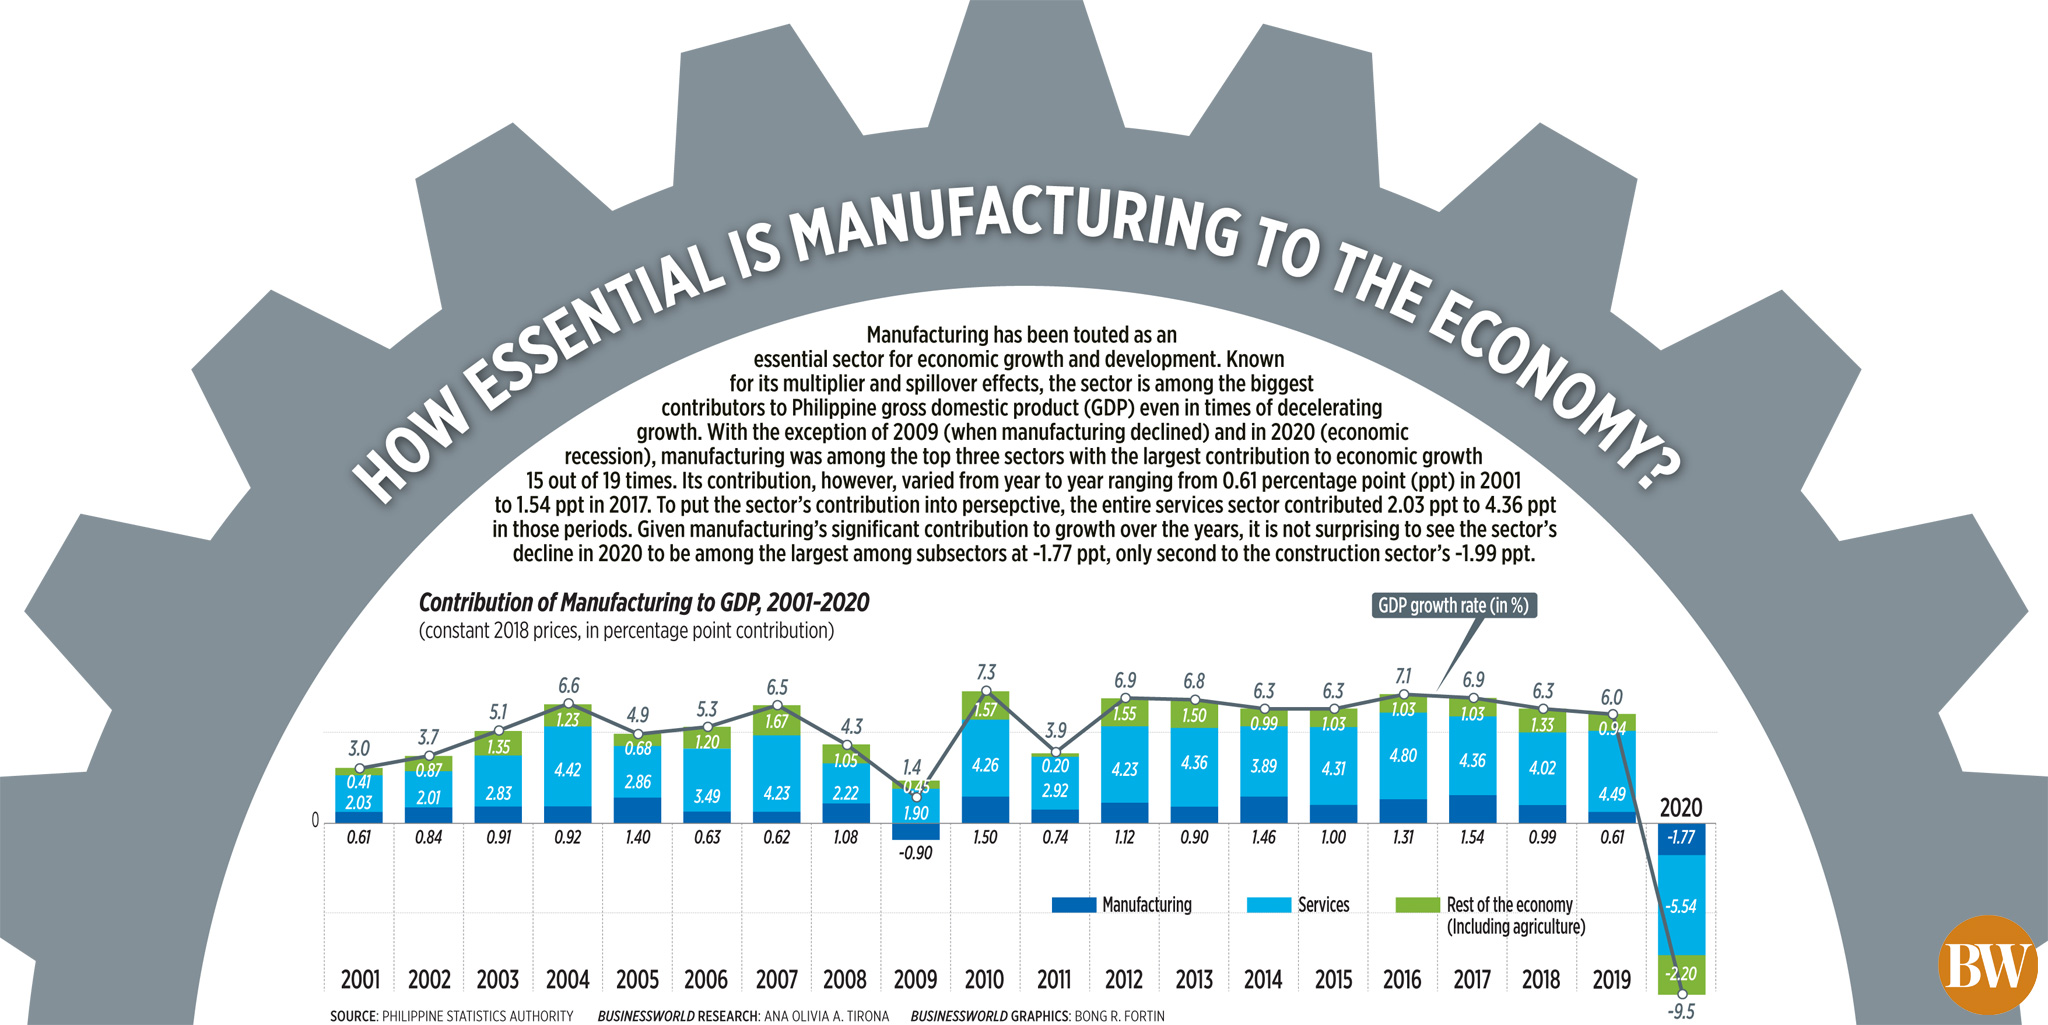 How essential is manufacturing to the economy?